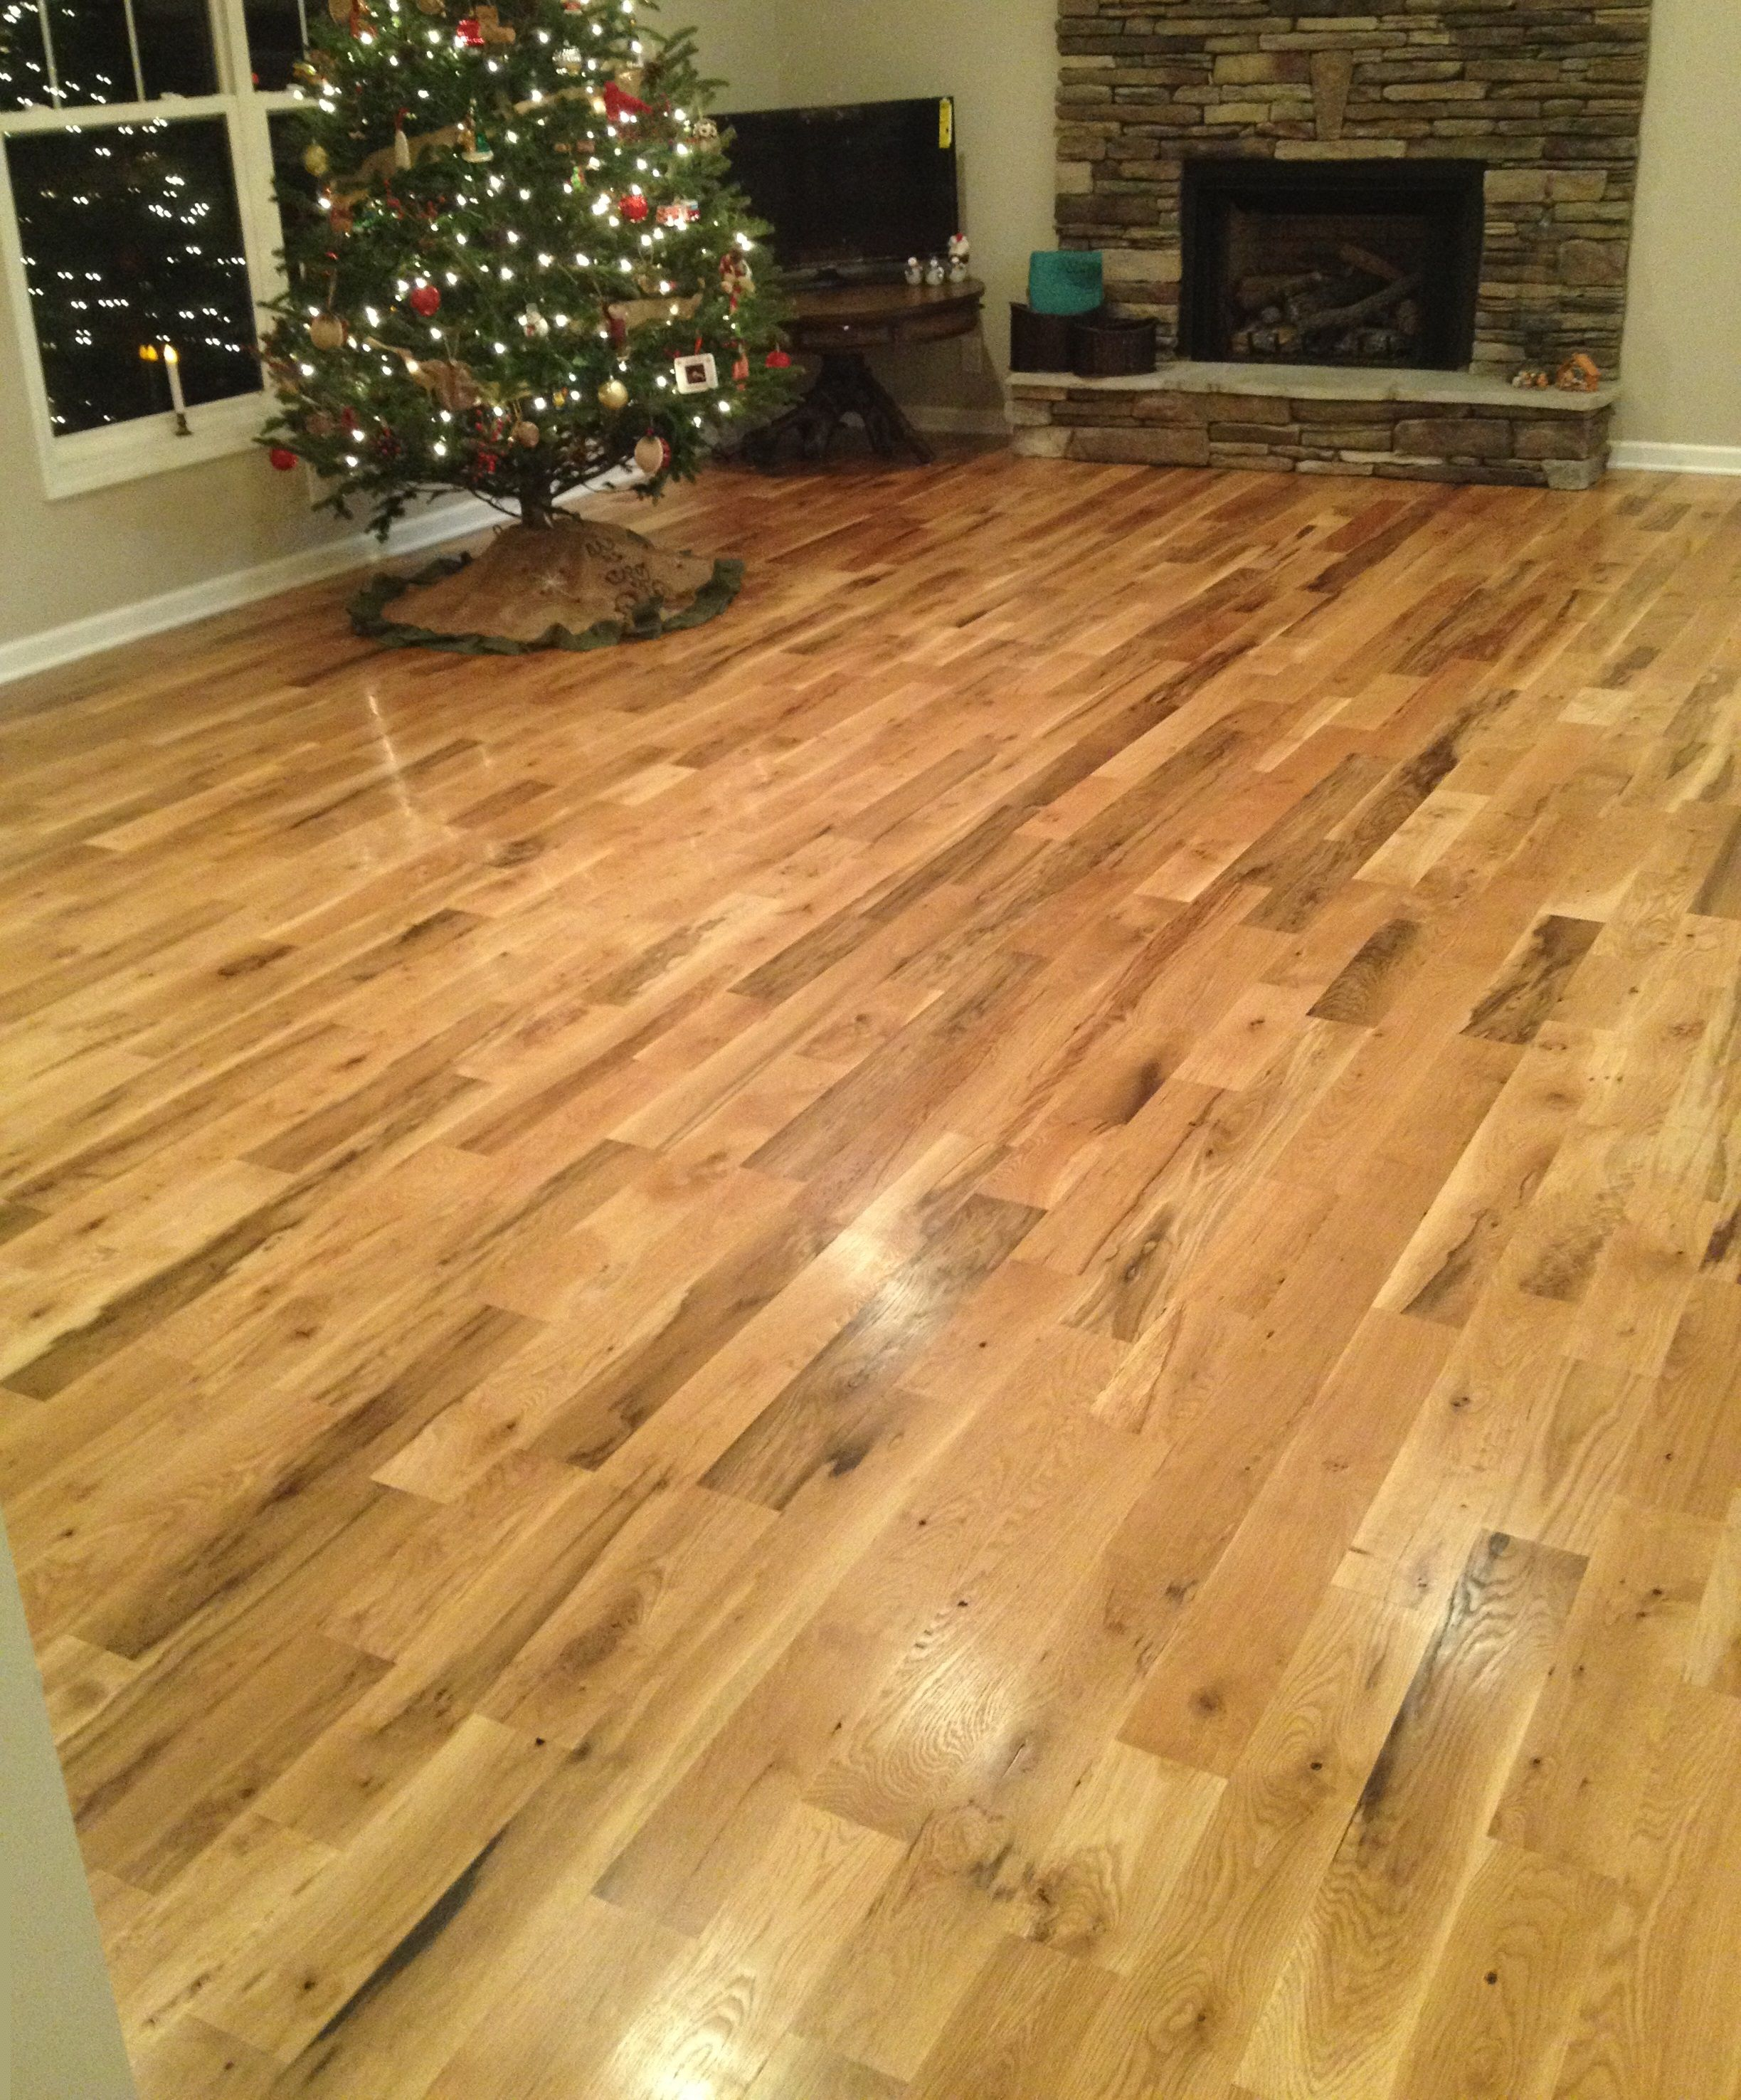 4 1 4 2 Common White Oak Hardwood Floors From Munday Hardwoods Flooring White Oak Hardwood Floors Flooring Inspiration